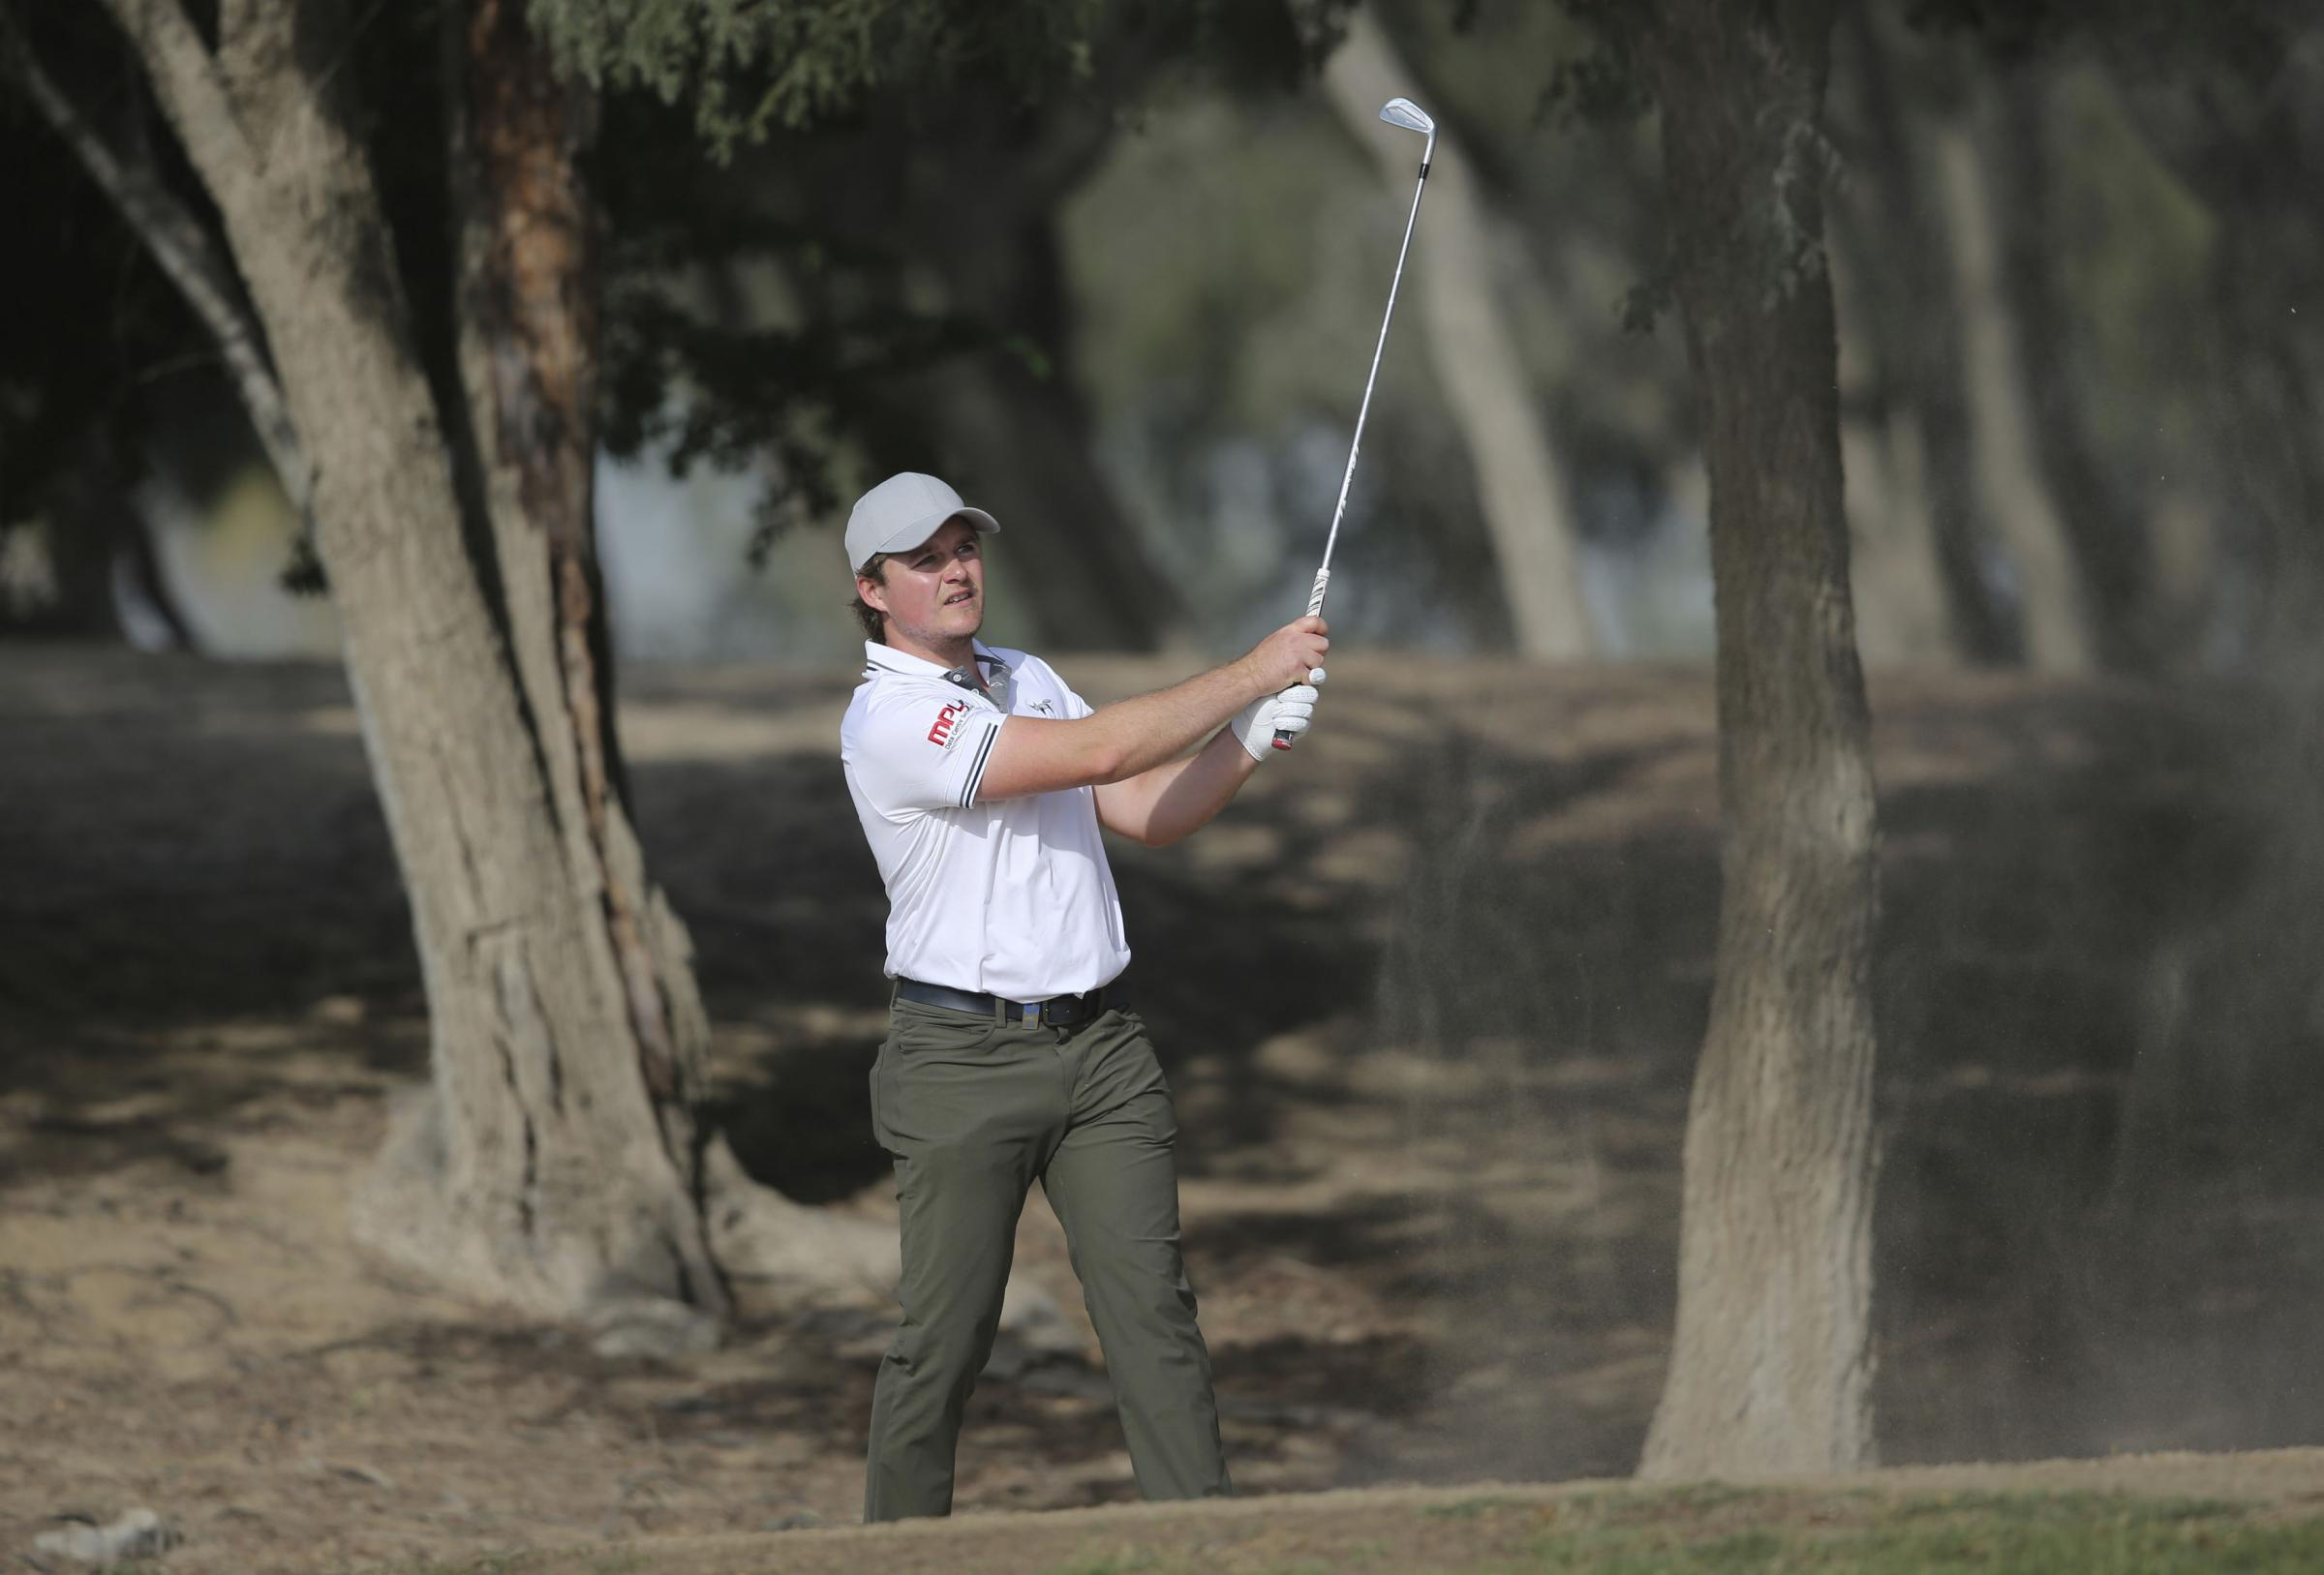 GOLF: Disastrous back nine ends Eddie Pepperell's bid in Malaysia